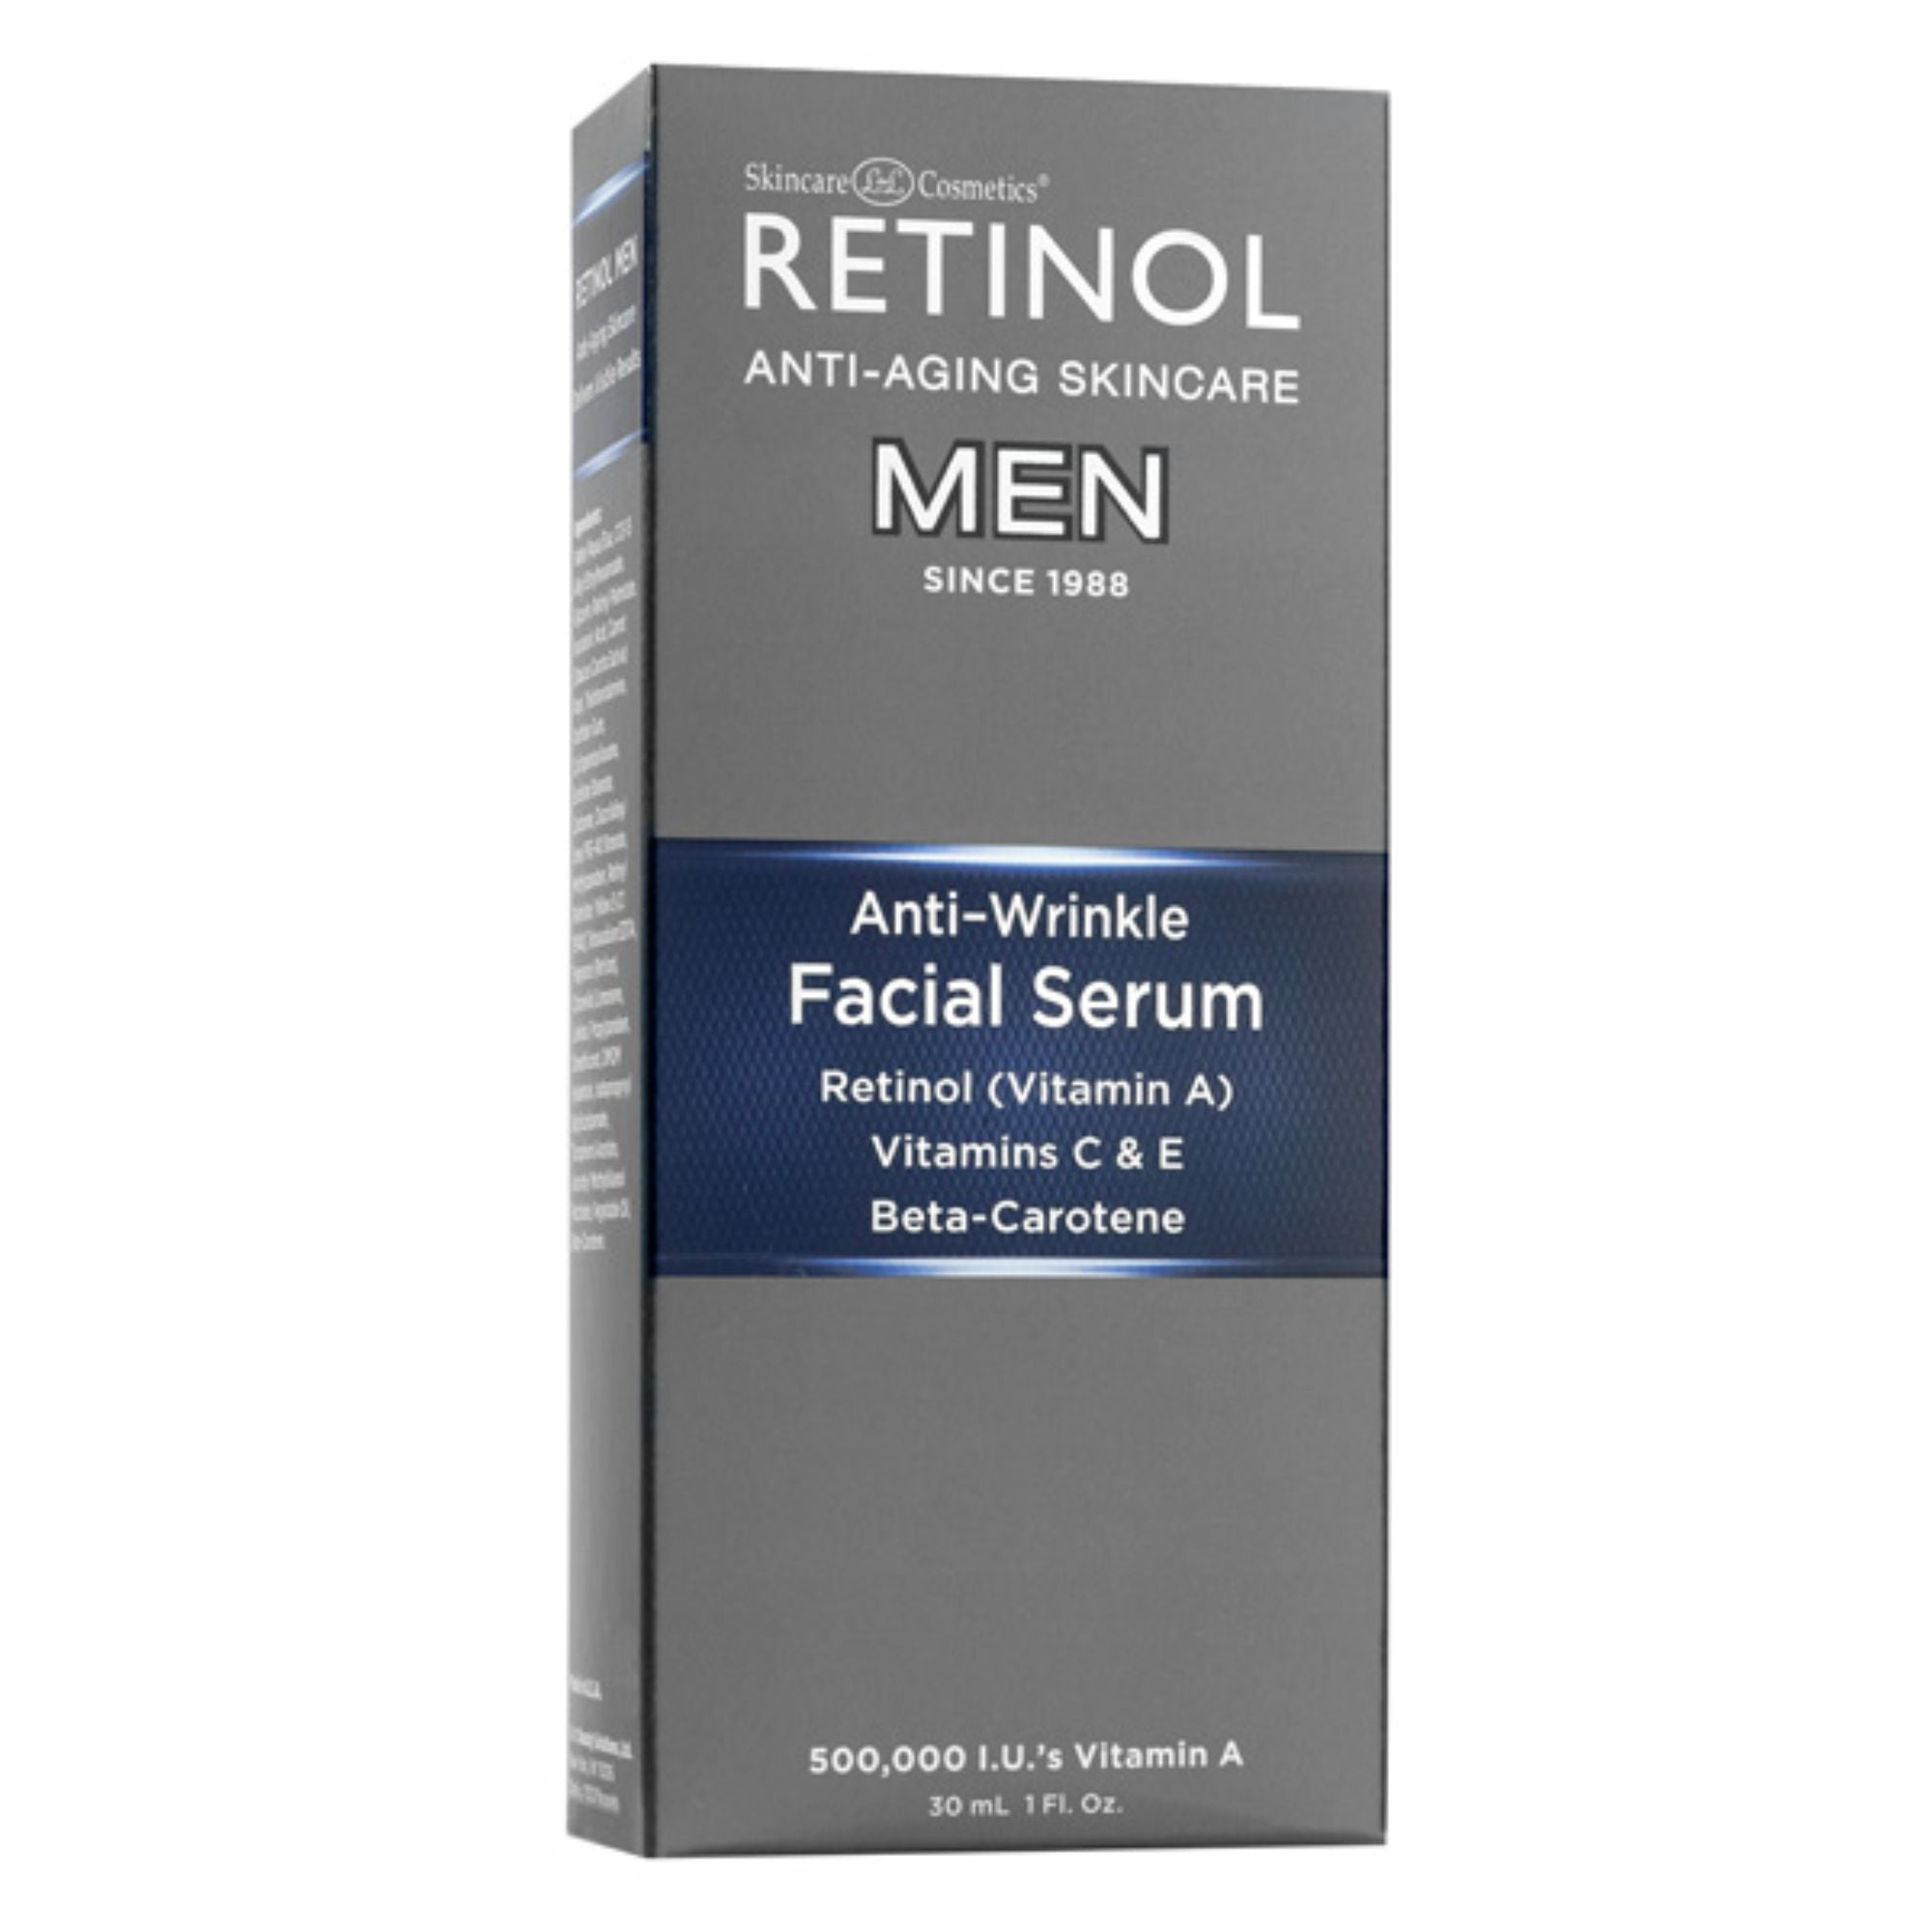 Men's Anti-Wrinkle Facial Serum